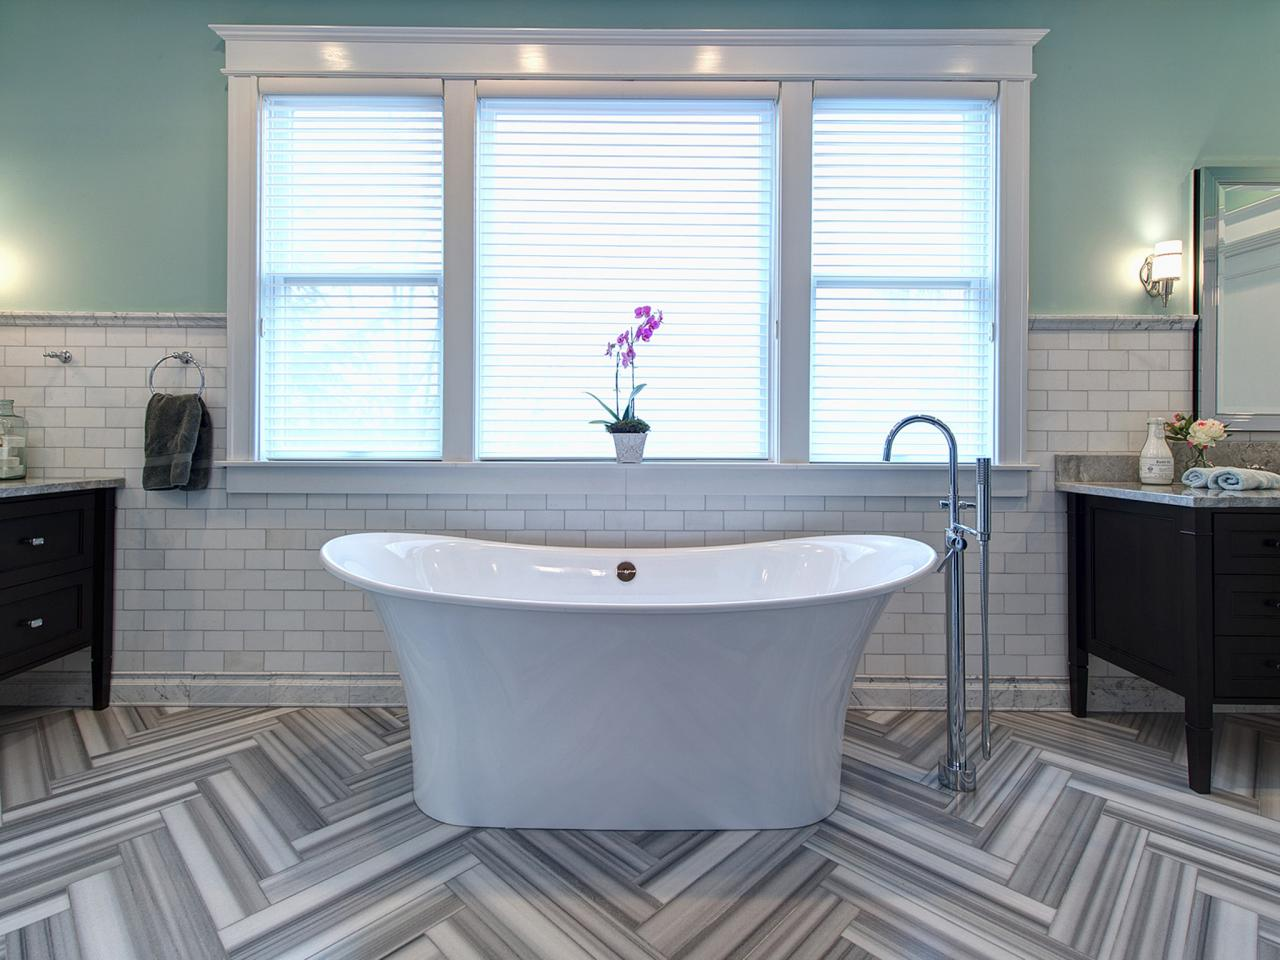 Feel Inspired By These Bathroom Tile Trends For 2019 6 Bathroom Tile Trends Feel Inspired By These Bathroom Tile Trends For 2019 Feel Inspired By These Bathroom Tile Trends For 2019 6